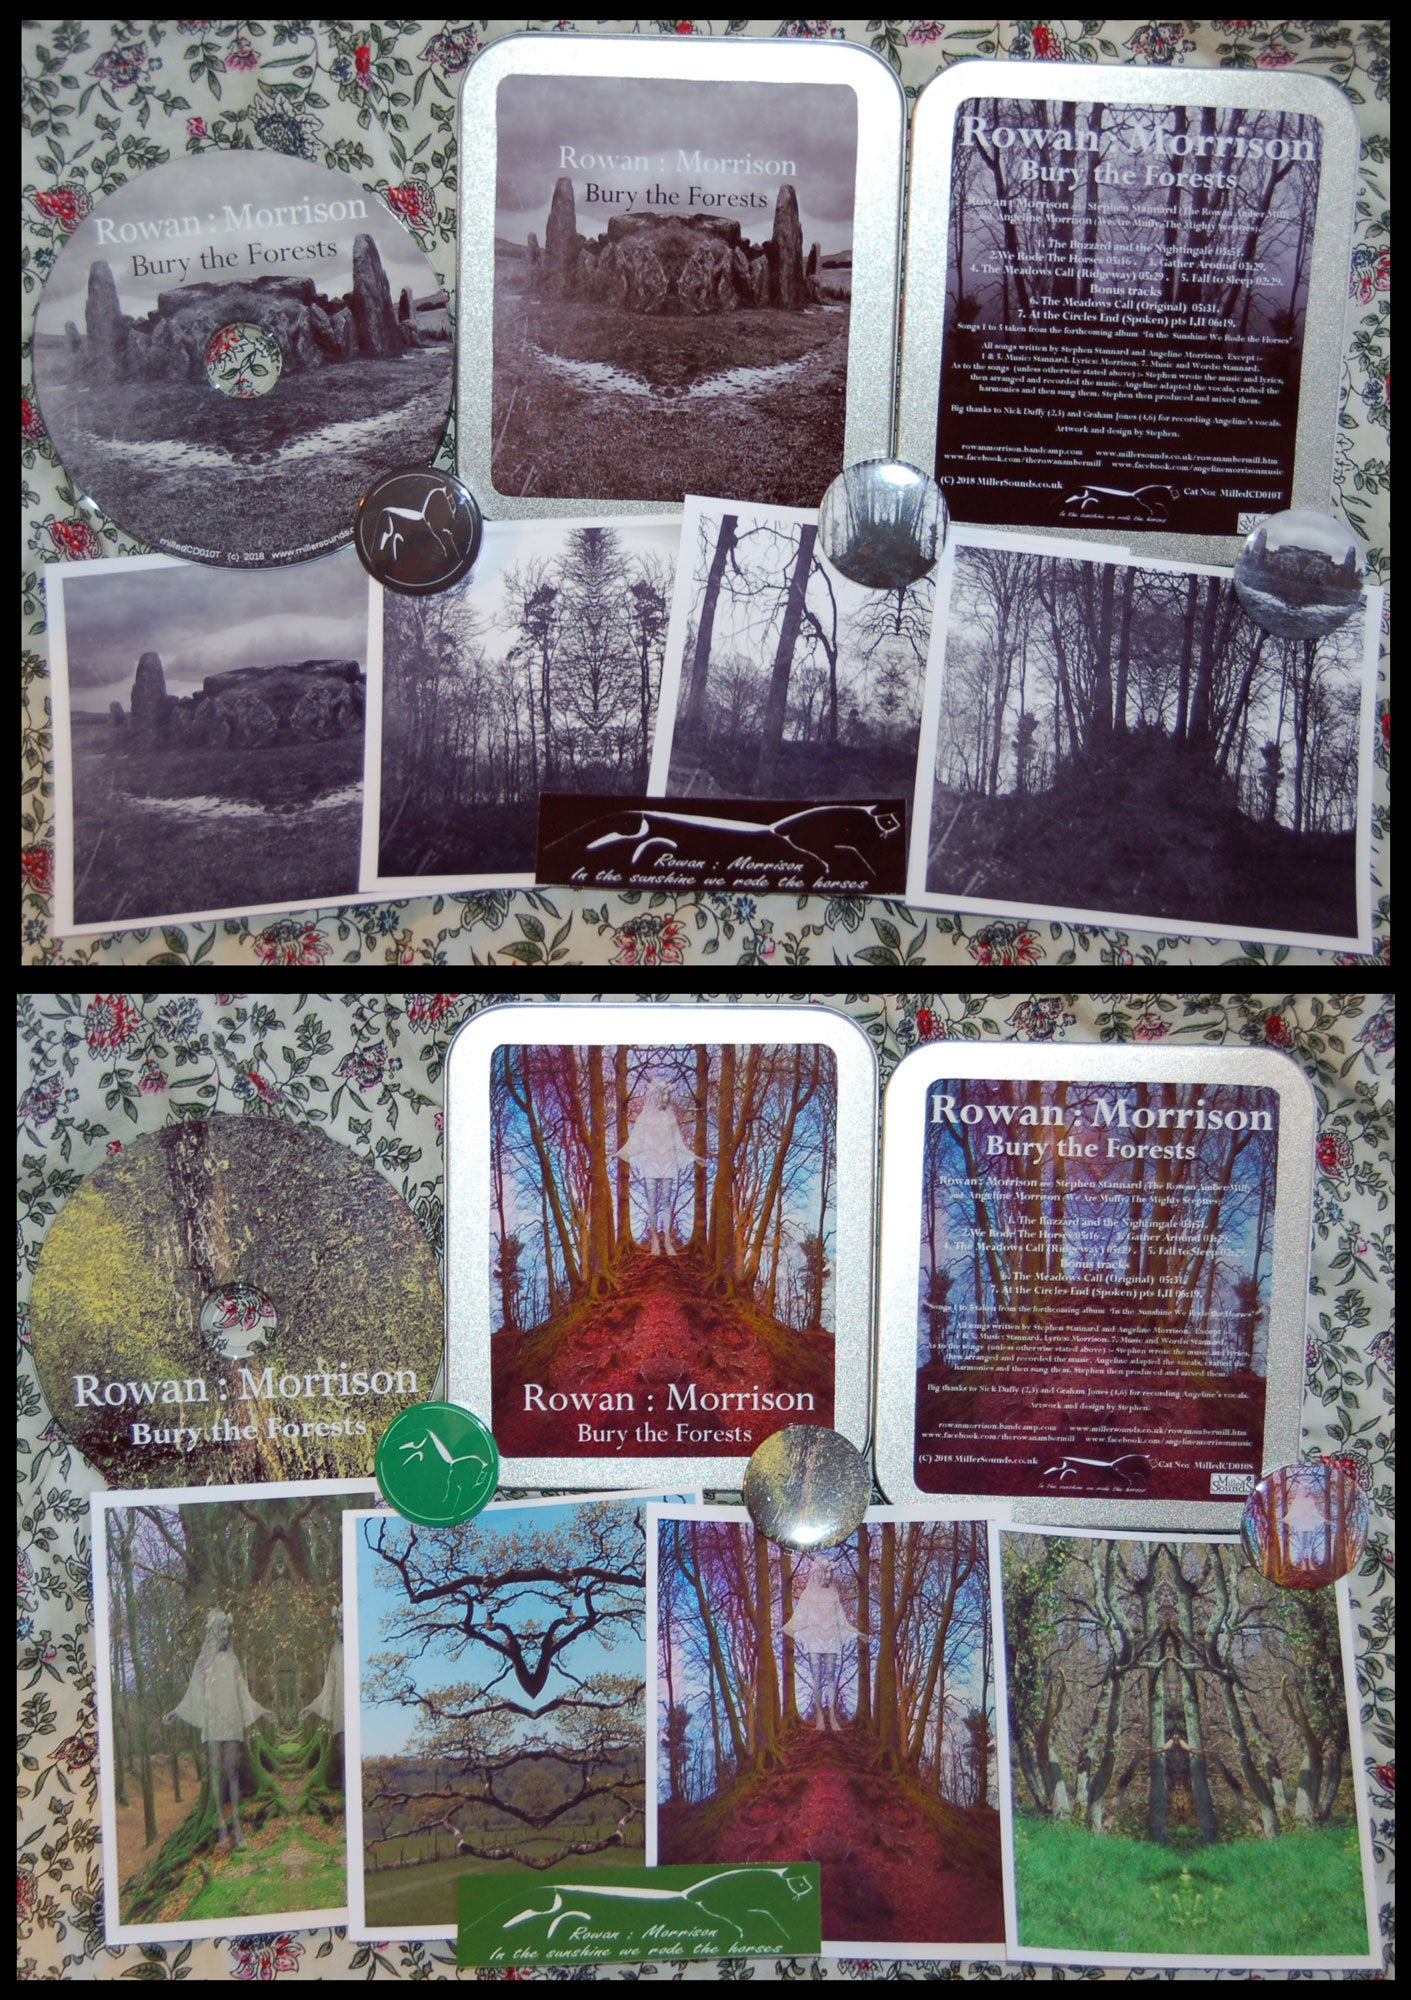 Image of Bury the Forests by Rowan : Morrison